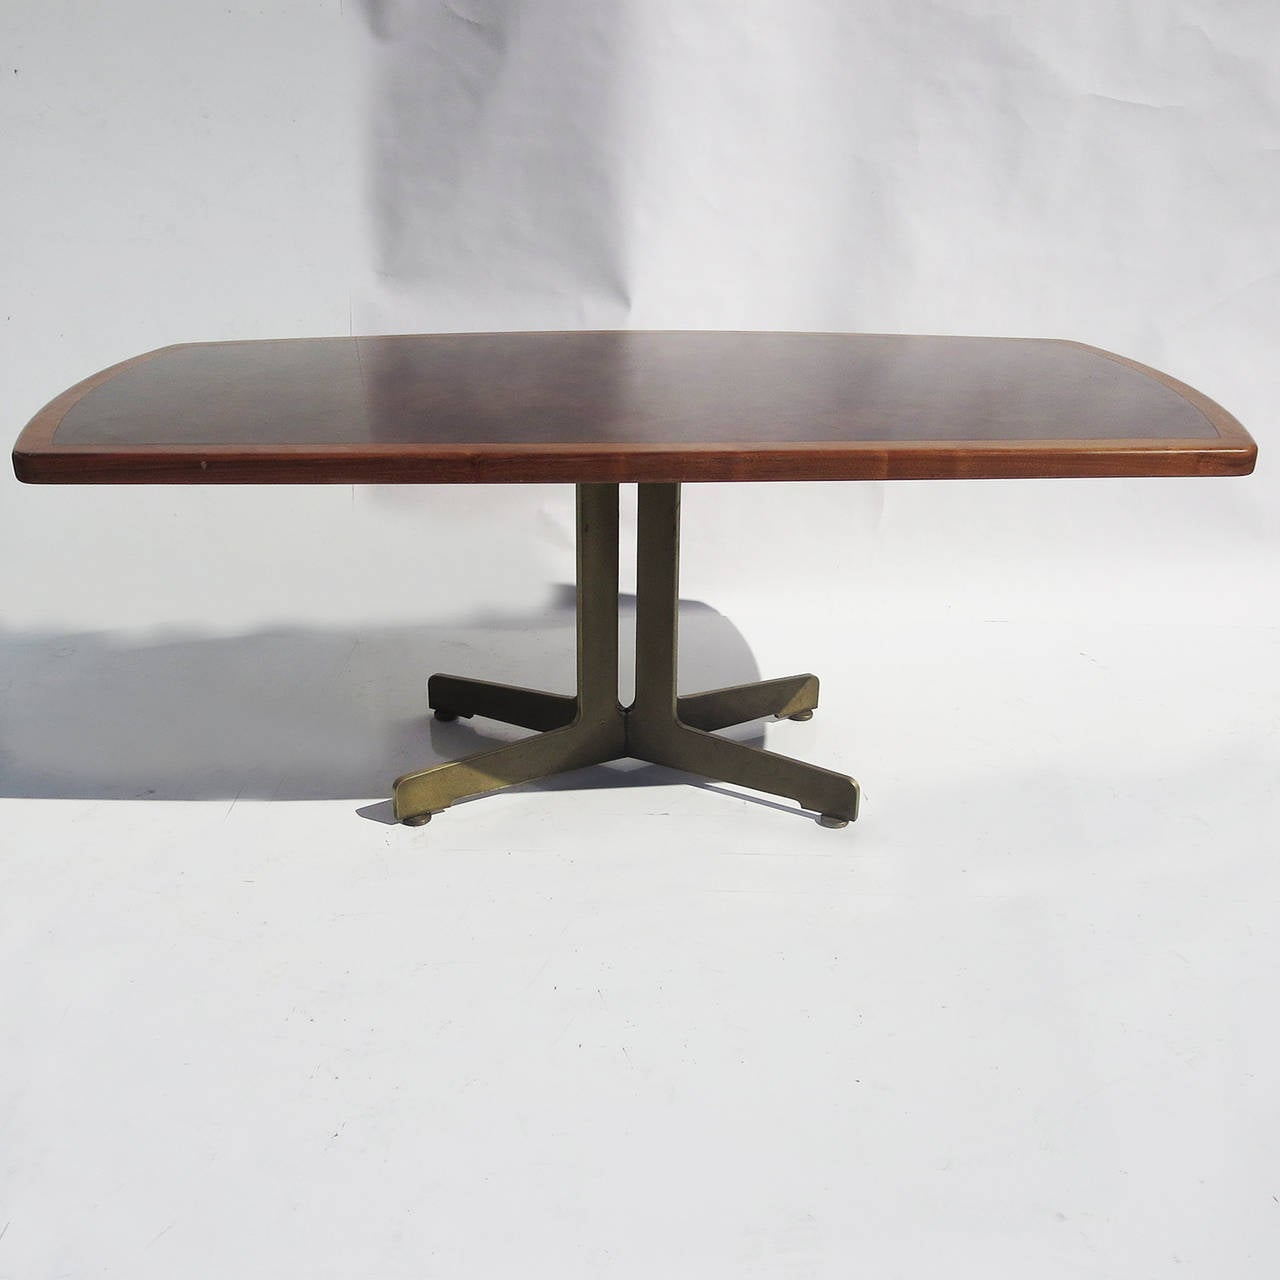 Copper Dining Room Tables: Walnut, Bronze And Acid Etched Copper Dining Table By